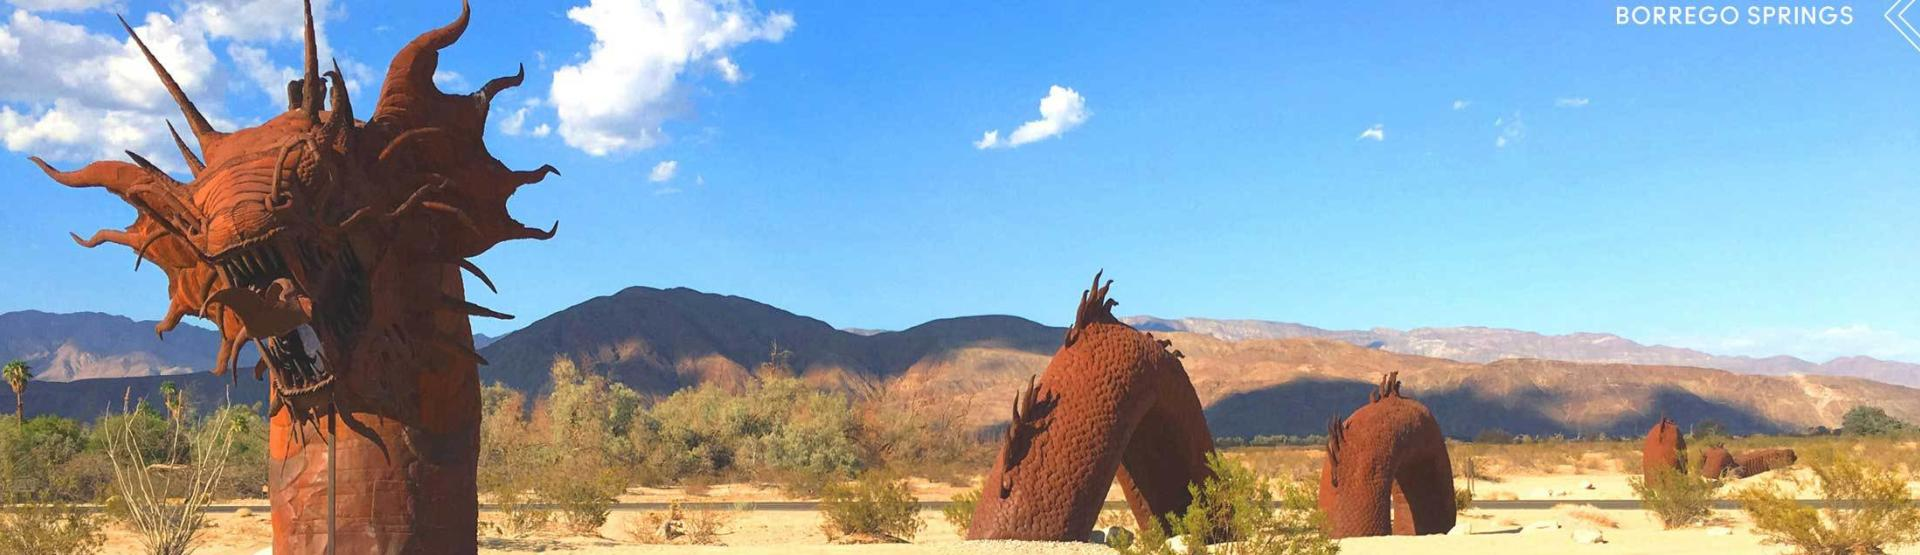 CAD_SOUTH_headerBorrego_Springs